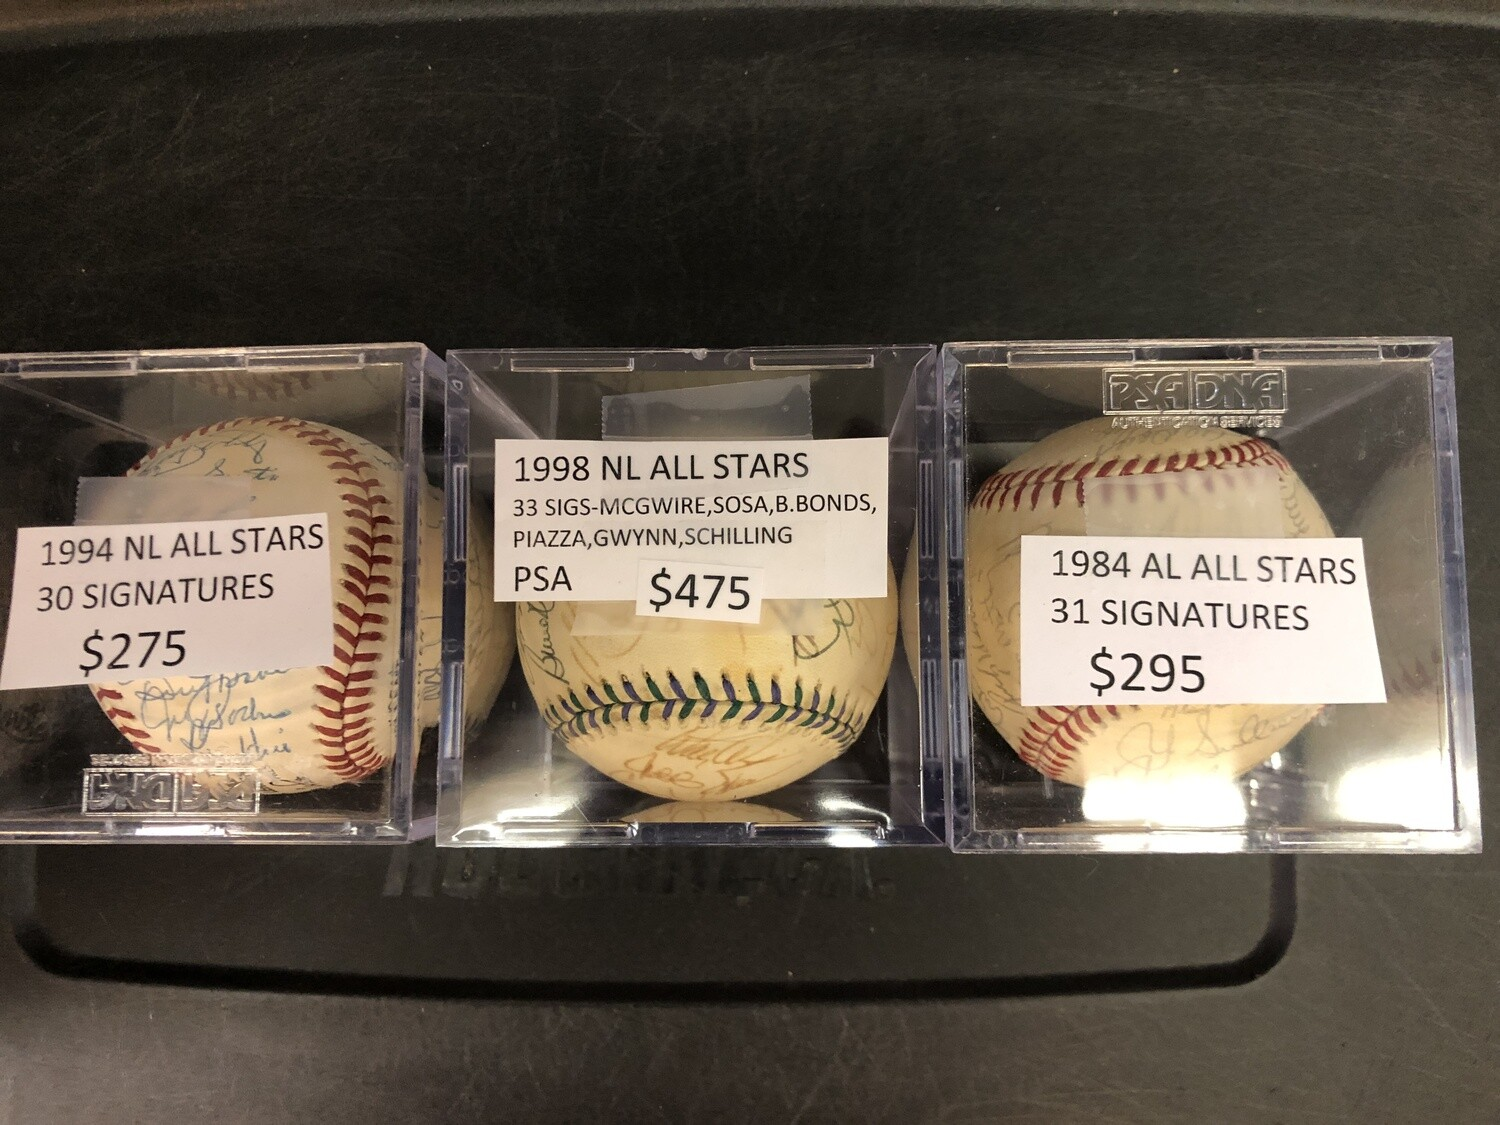 1984 American league All Star Game signed ball 31 sigs;